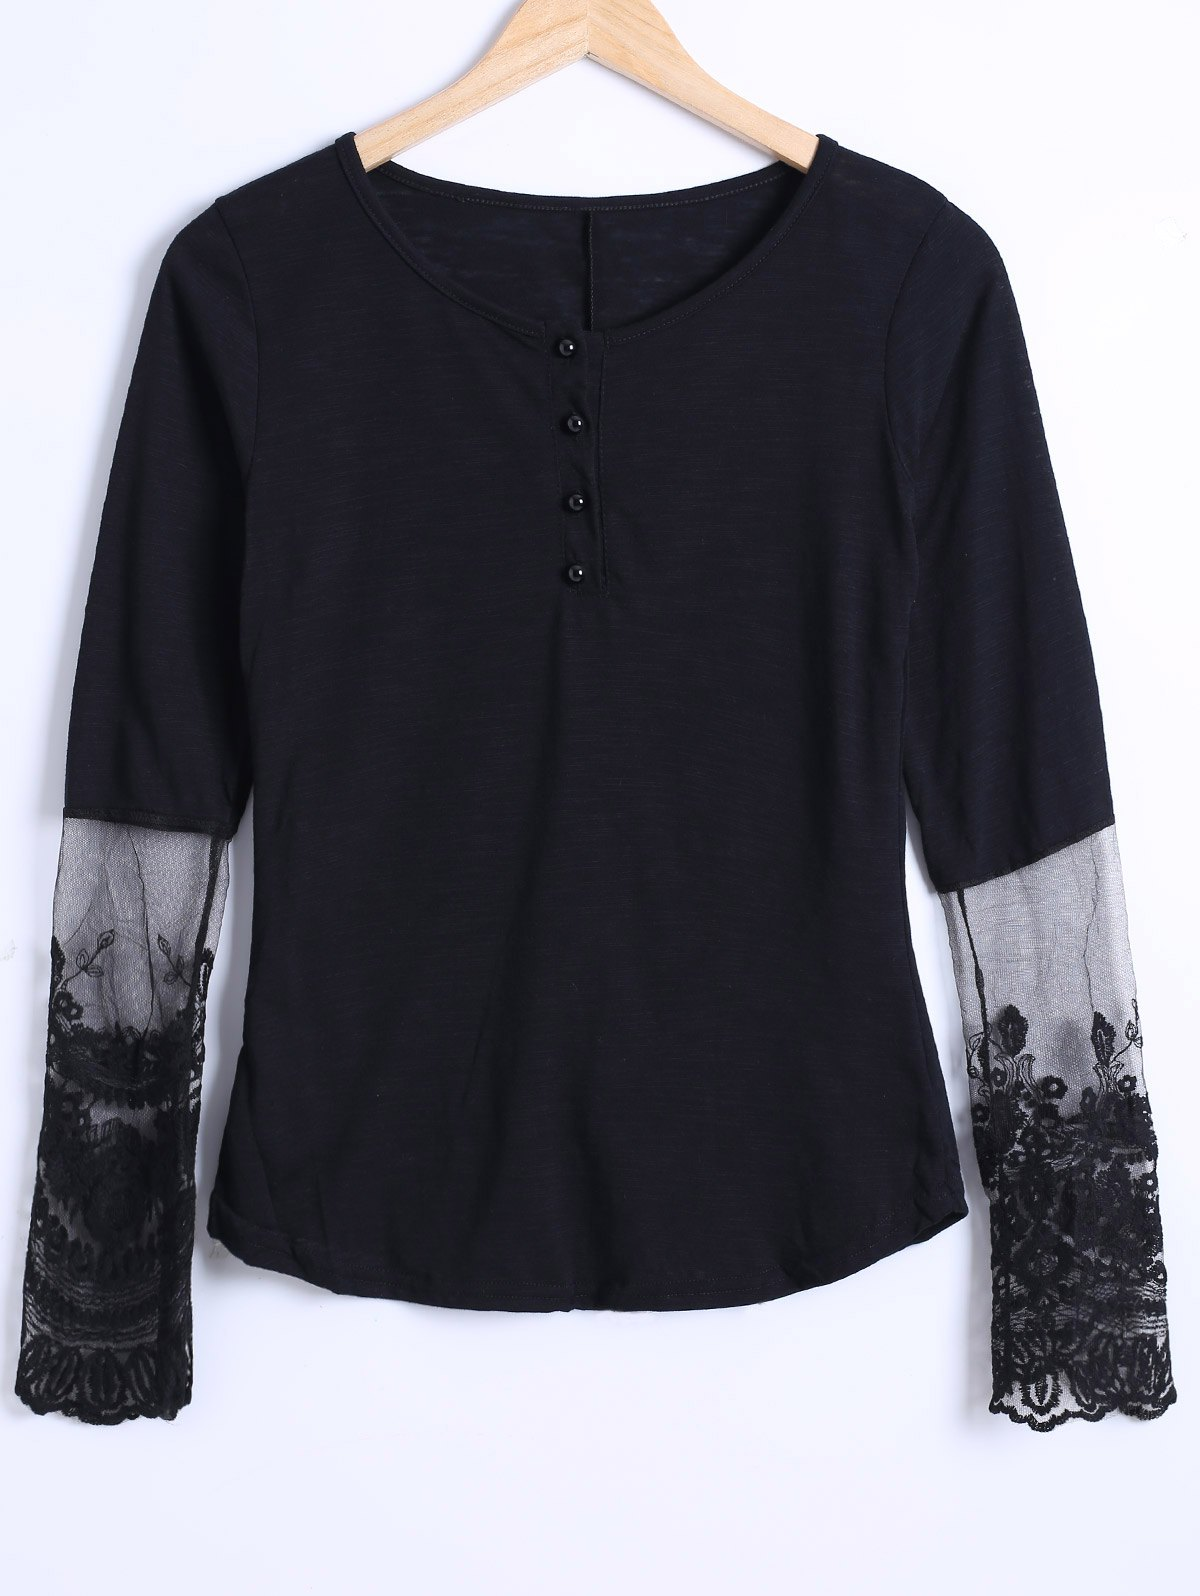 See-Through Lace Splicing Blouse - BLACK 4XL